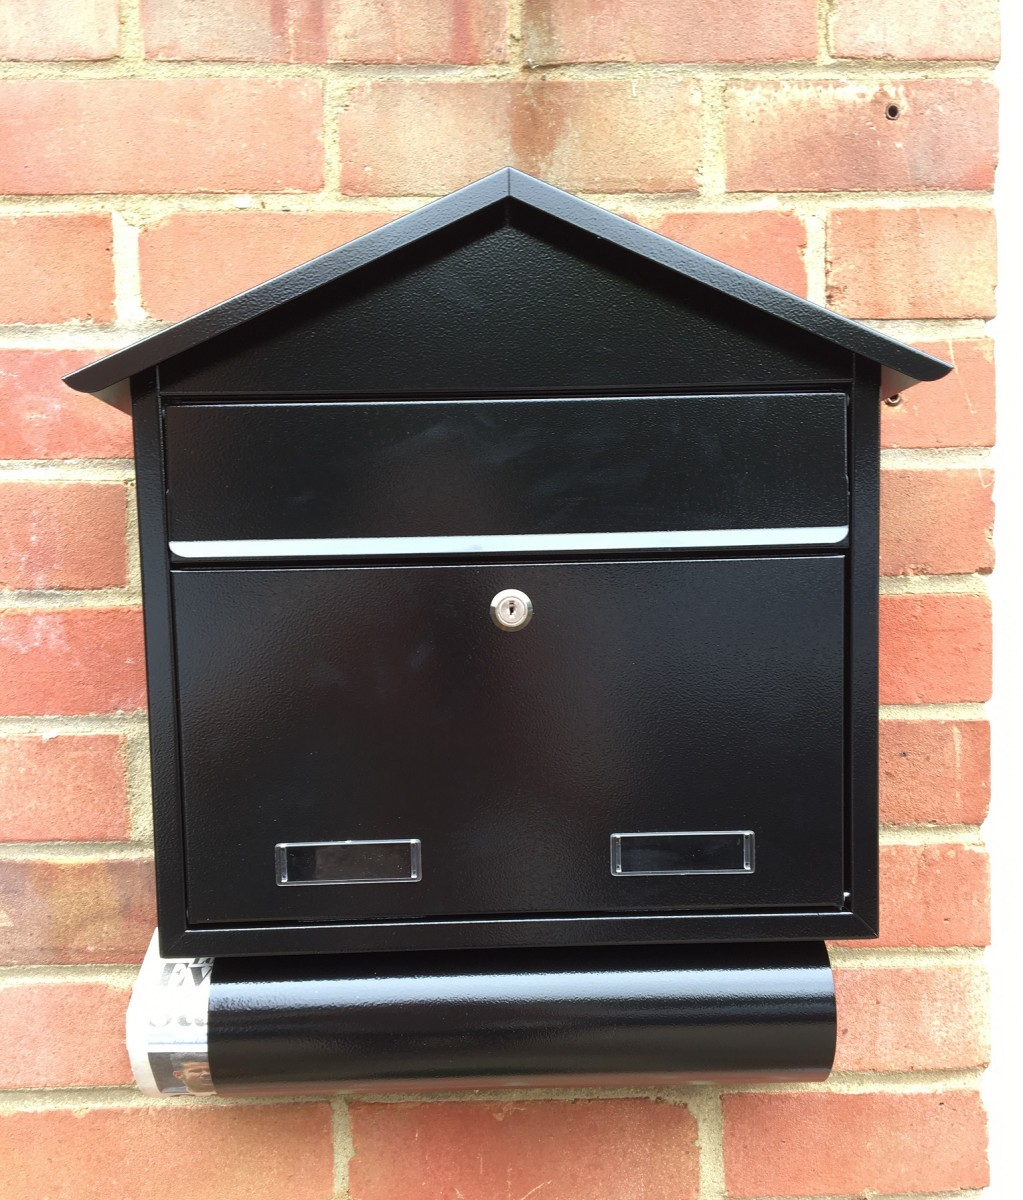 Letterbox Uk: SD3T Outdoor Wall Mounted Post Box + Newspaper Holder